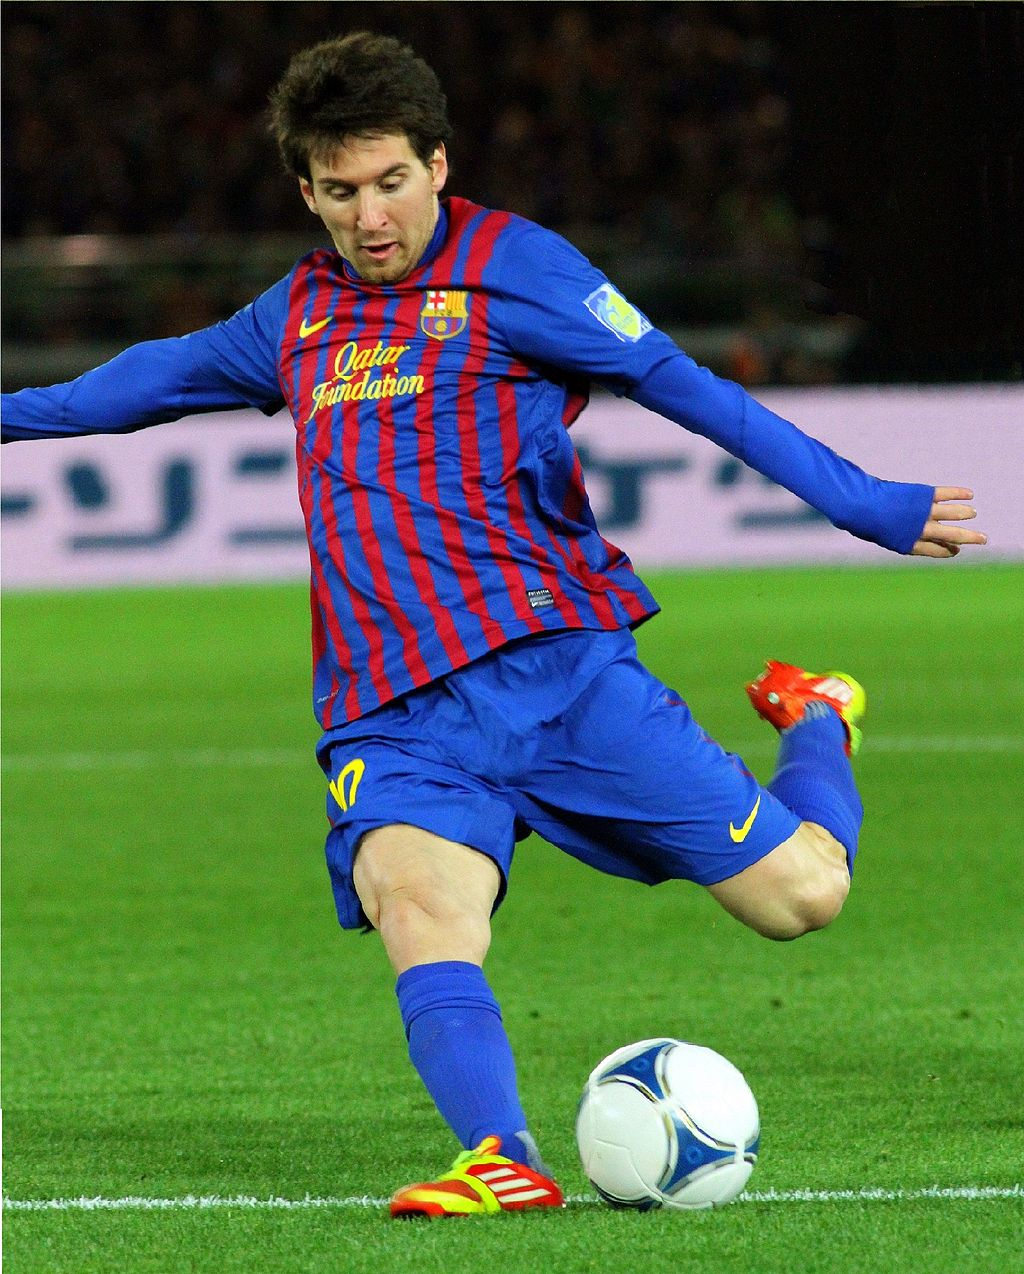 1024px-Lionel_Messi,_Player_of_FC_Barcelona_team.JPG